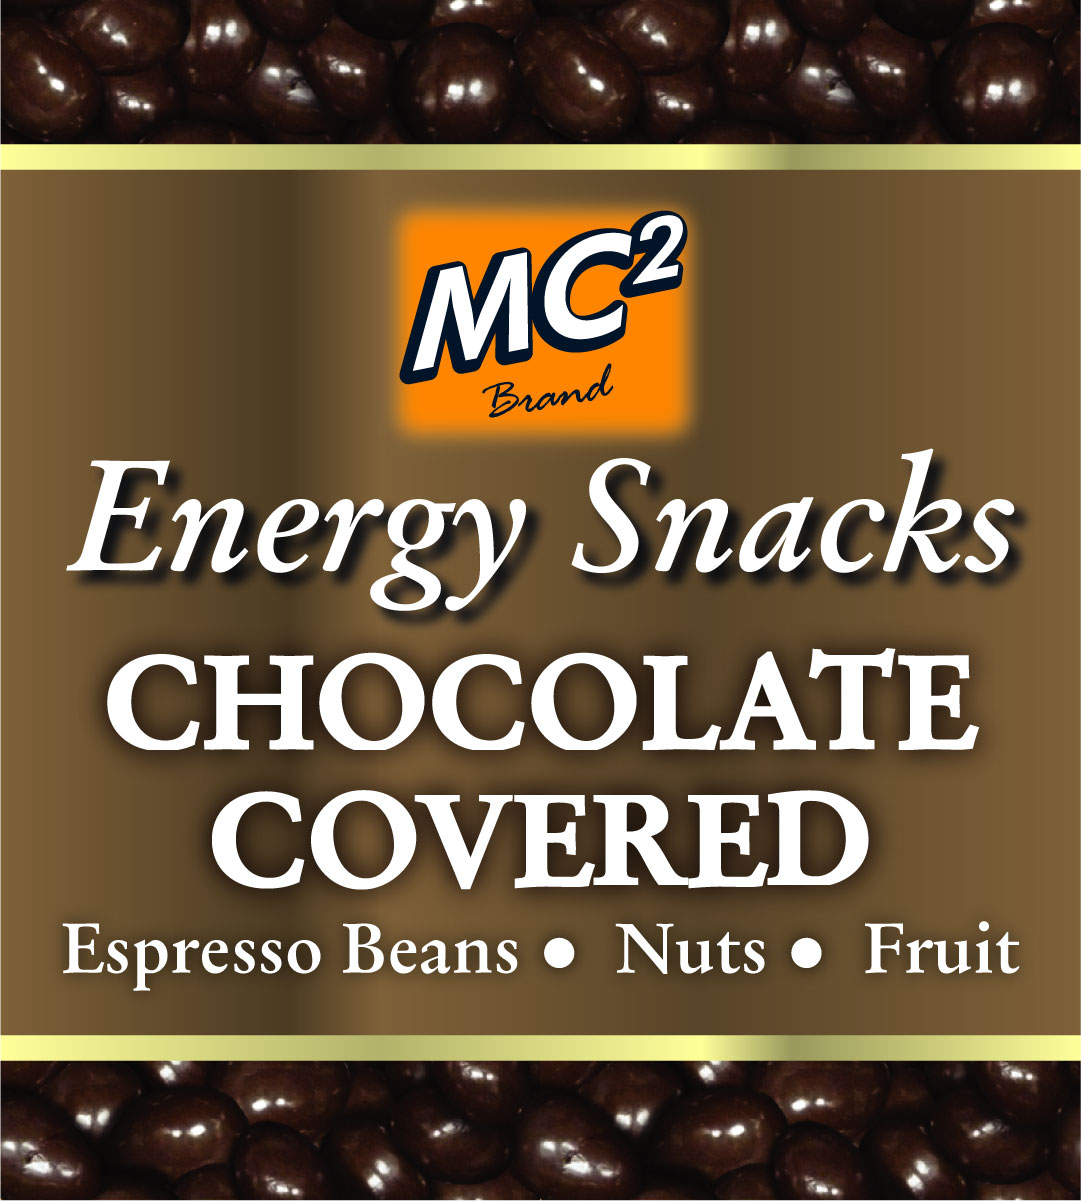 img-mc2energysnacks-banner-mobile